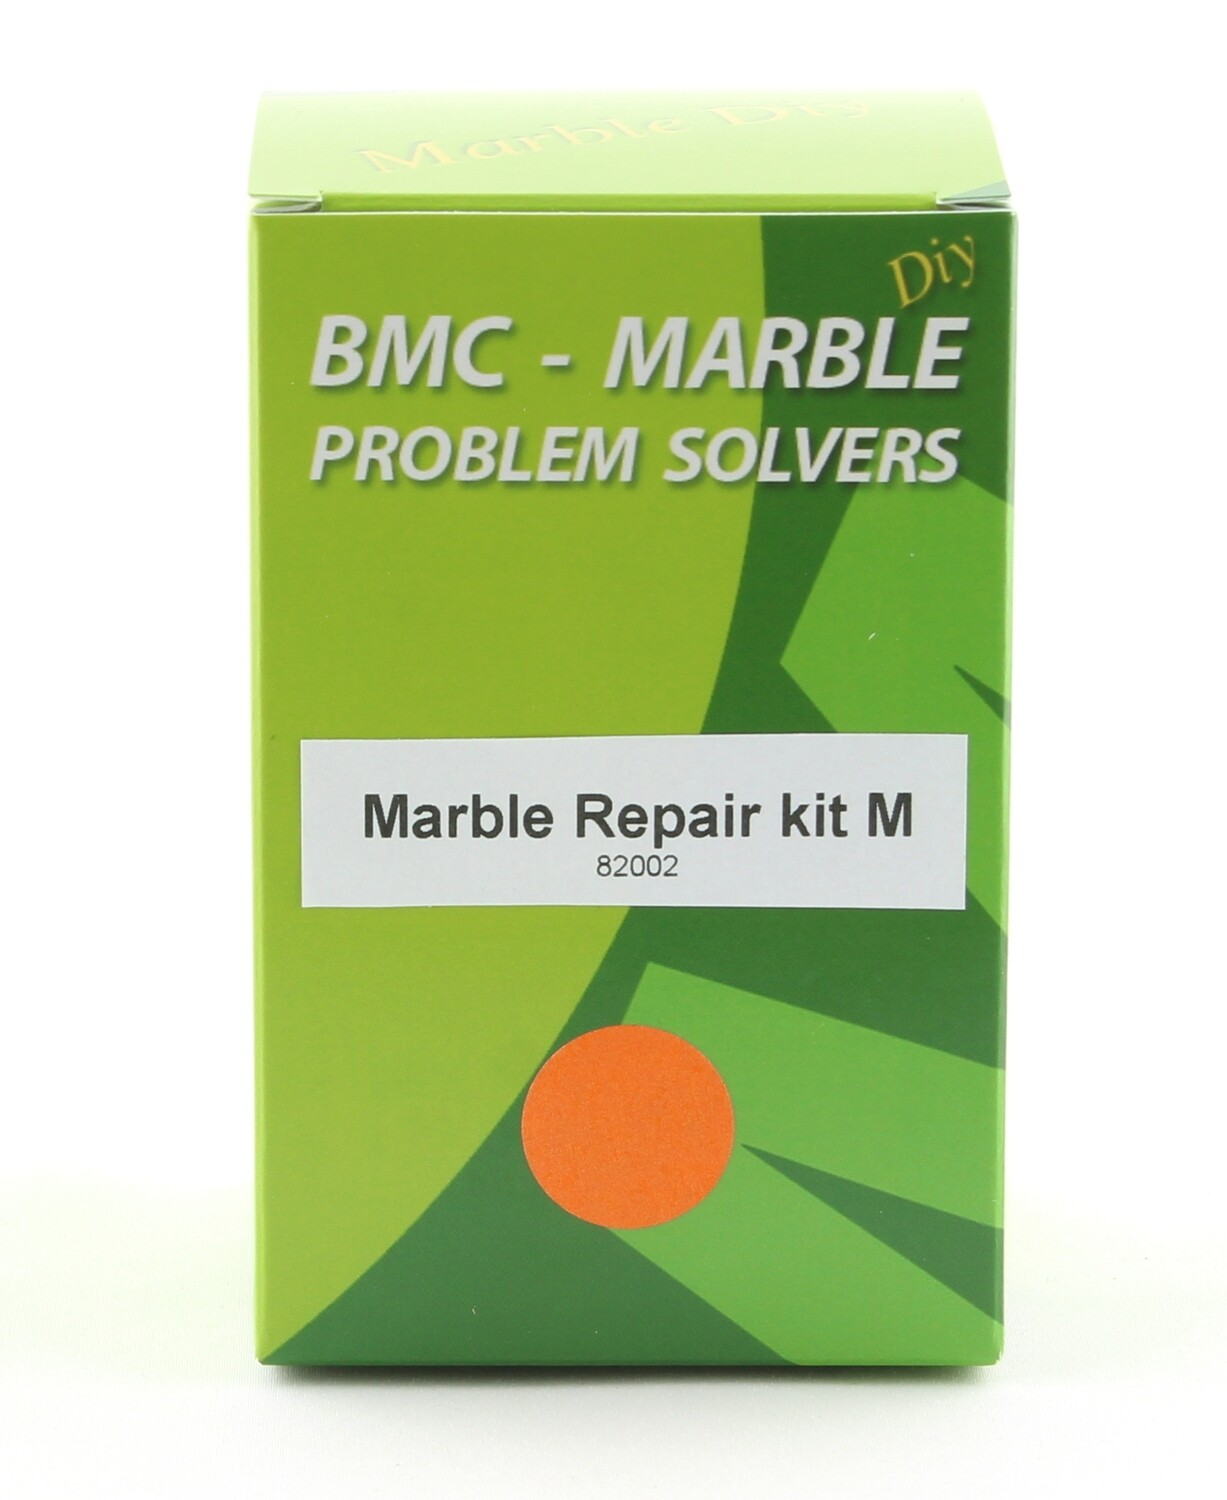 Marble Repair kit EM to fixing marble and granite